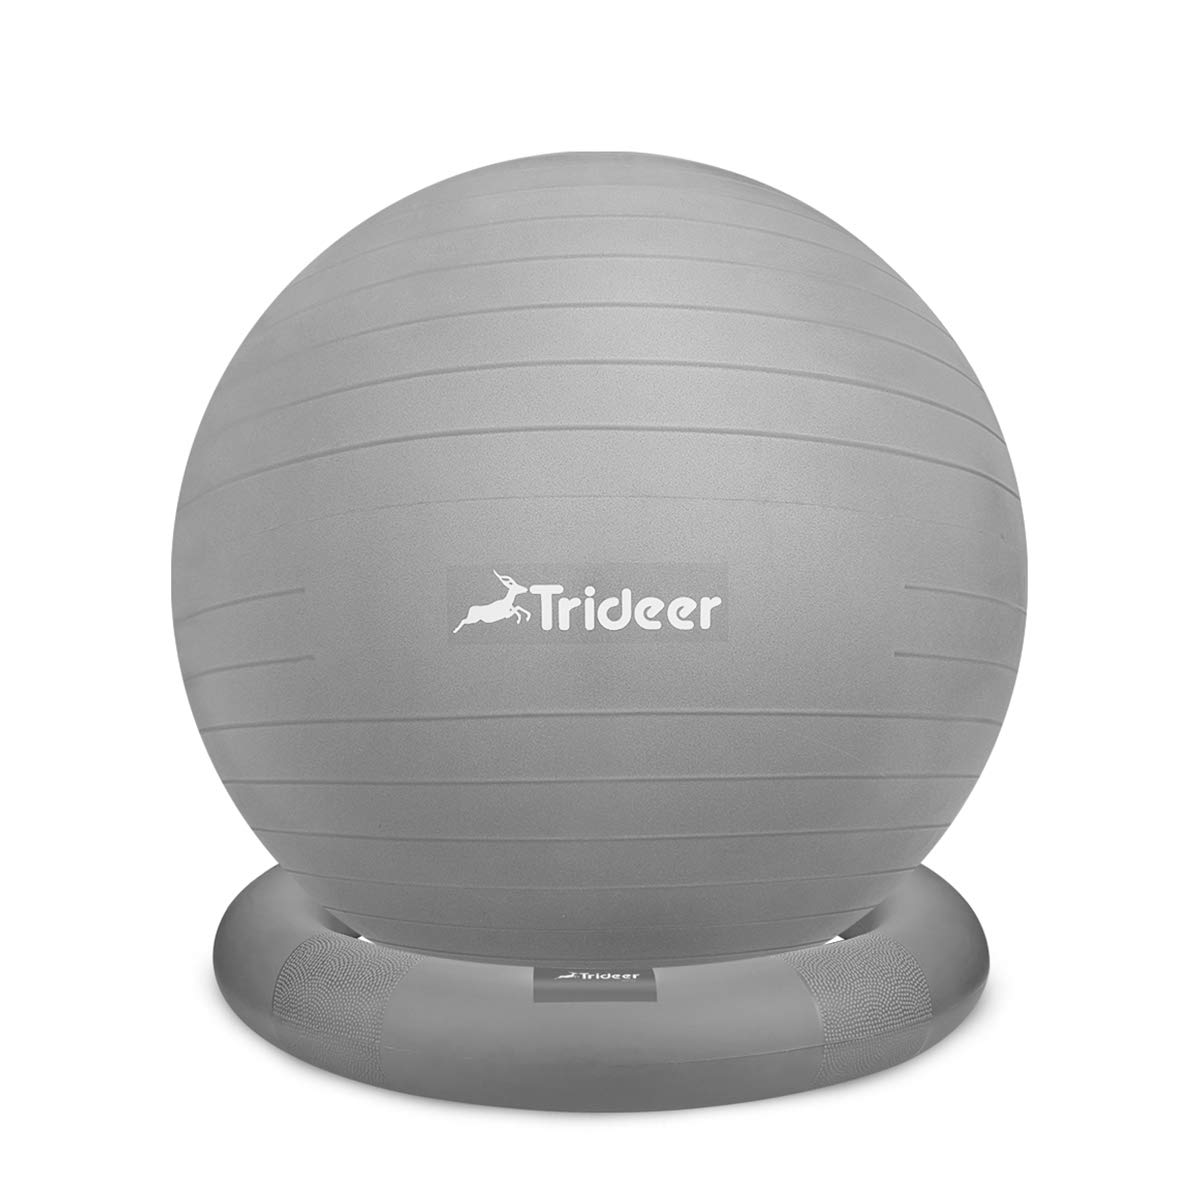 Trideer Ball Chair - Exercise Stability Yoga Ball